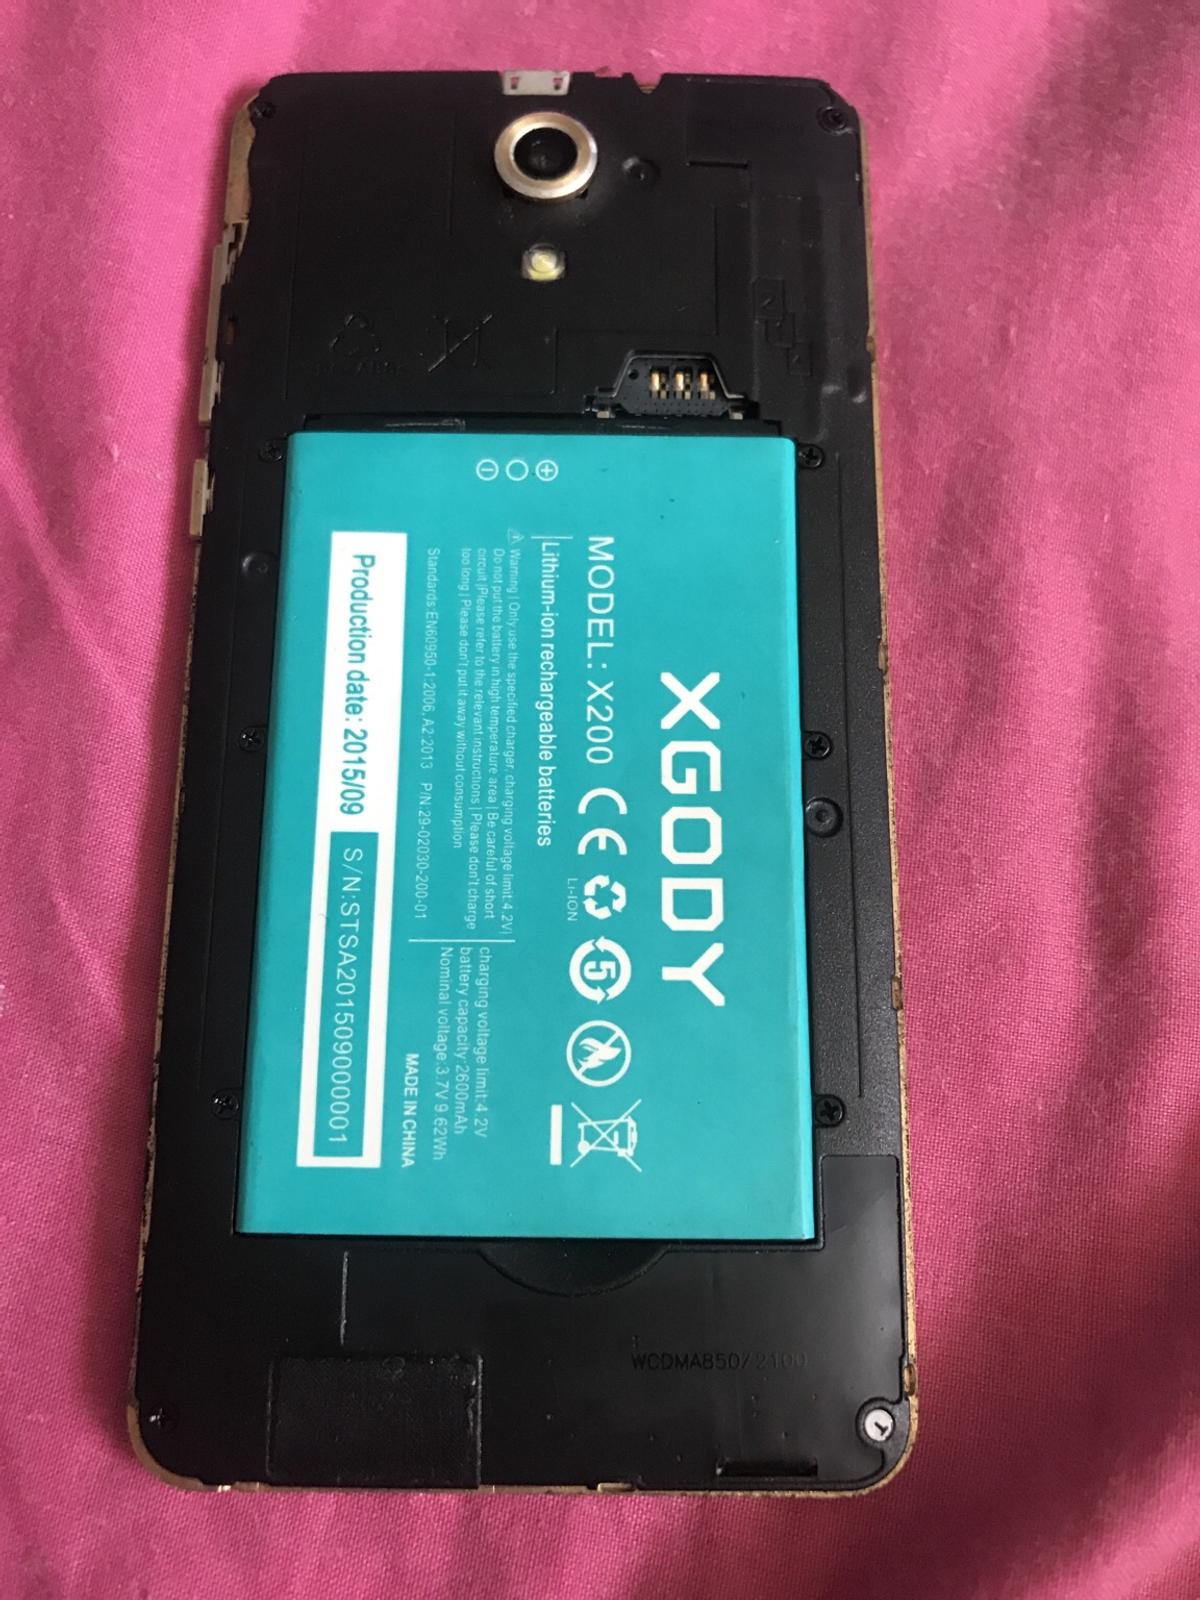 Xgody phone in working order 2 sim in LV1002 Рига for £18 00